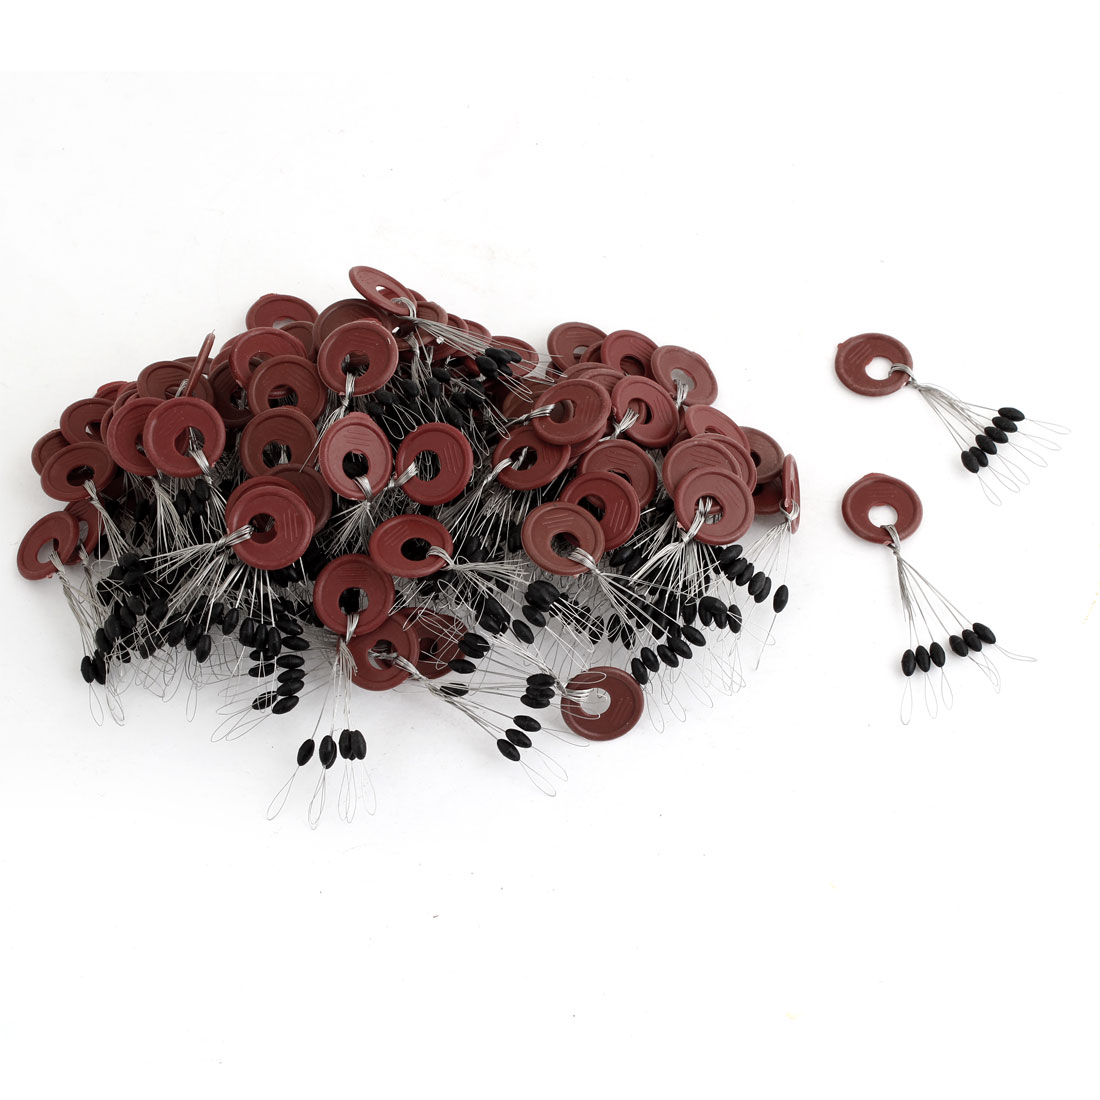 Unique Bargains 102 Pcs Beads Fishing Floaters Bobbers 5mmx2mm by